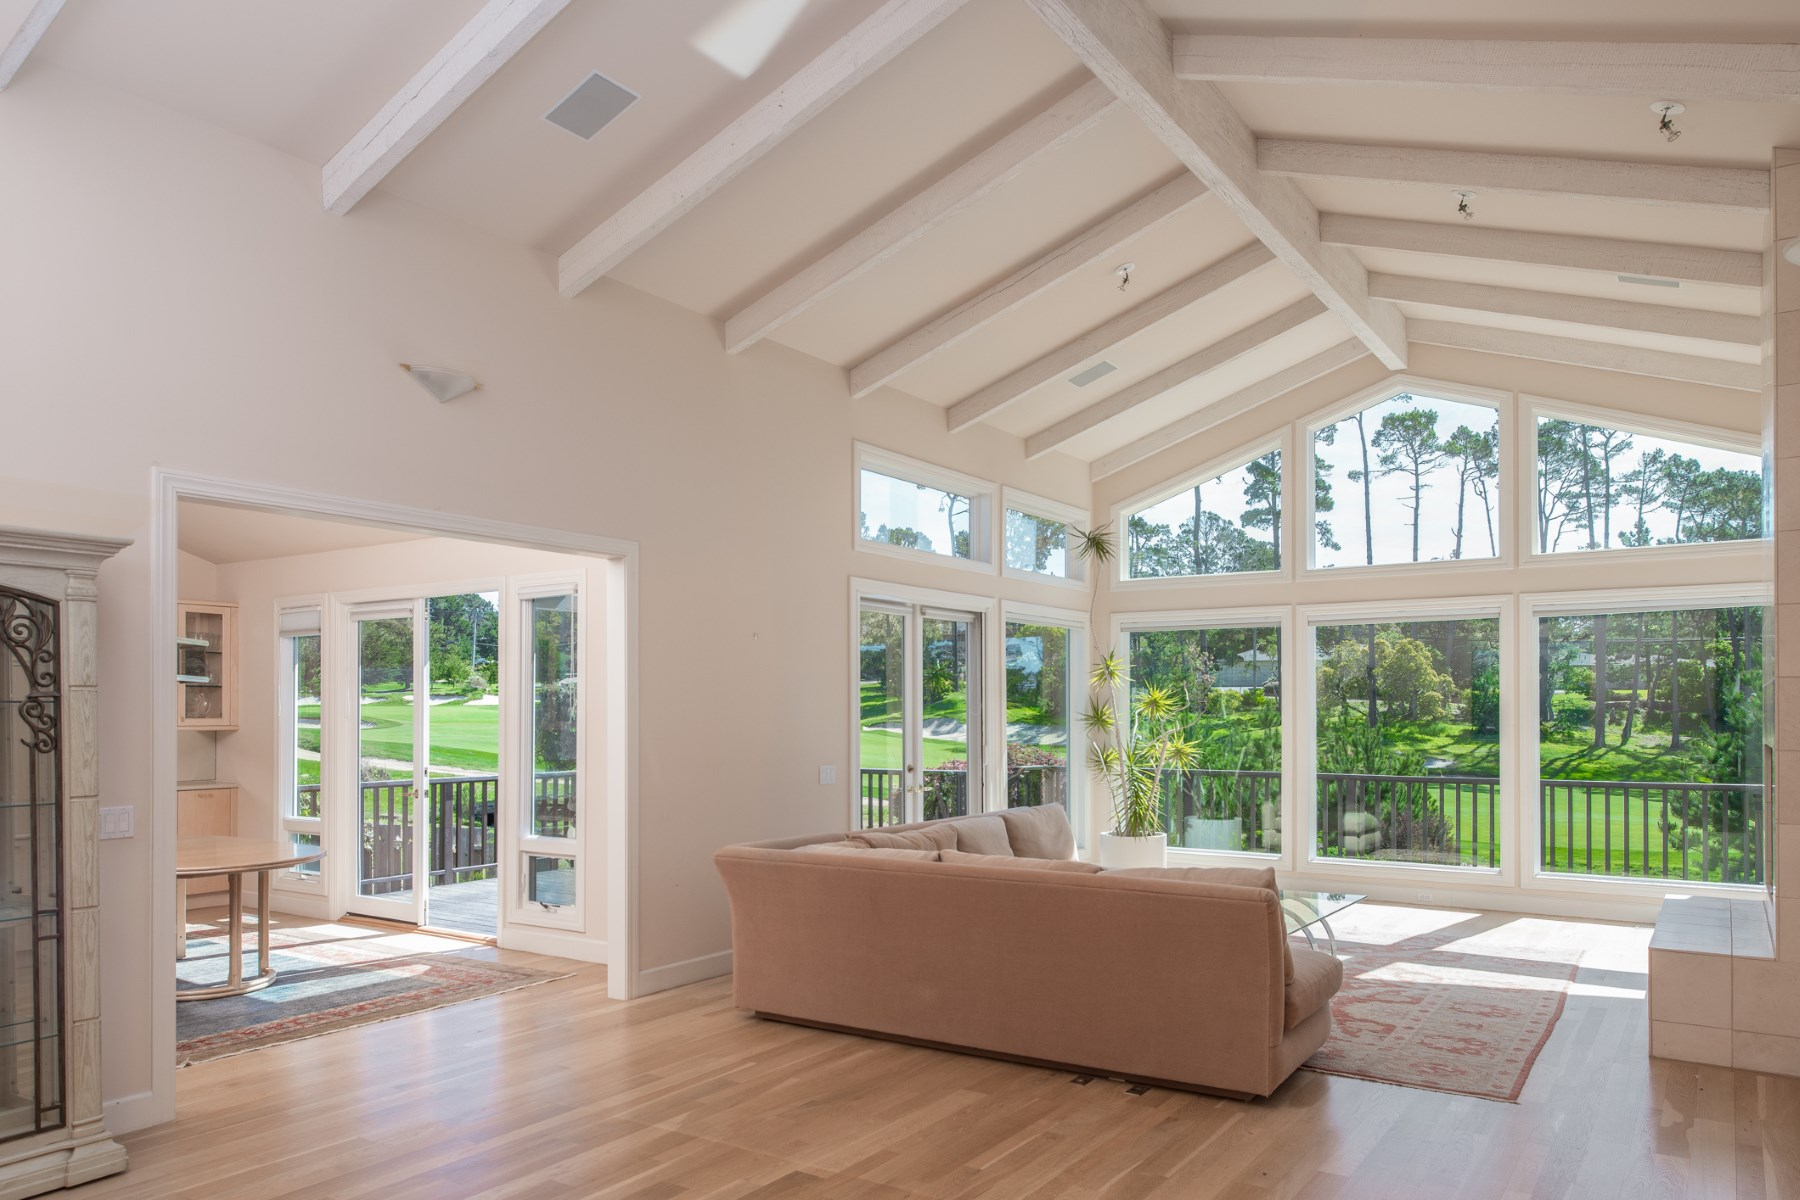 Single Family Home for Sale at Country Club Golfer's Oasis 1072 San Carlos Road Pebble Beach, California, 93953 United States